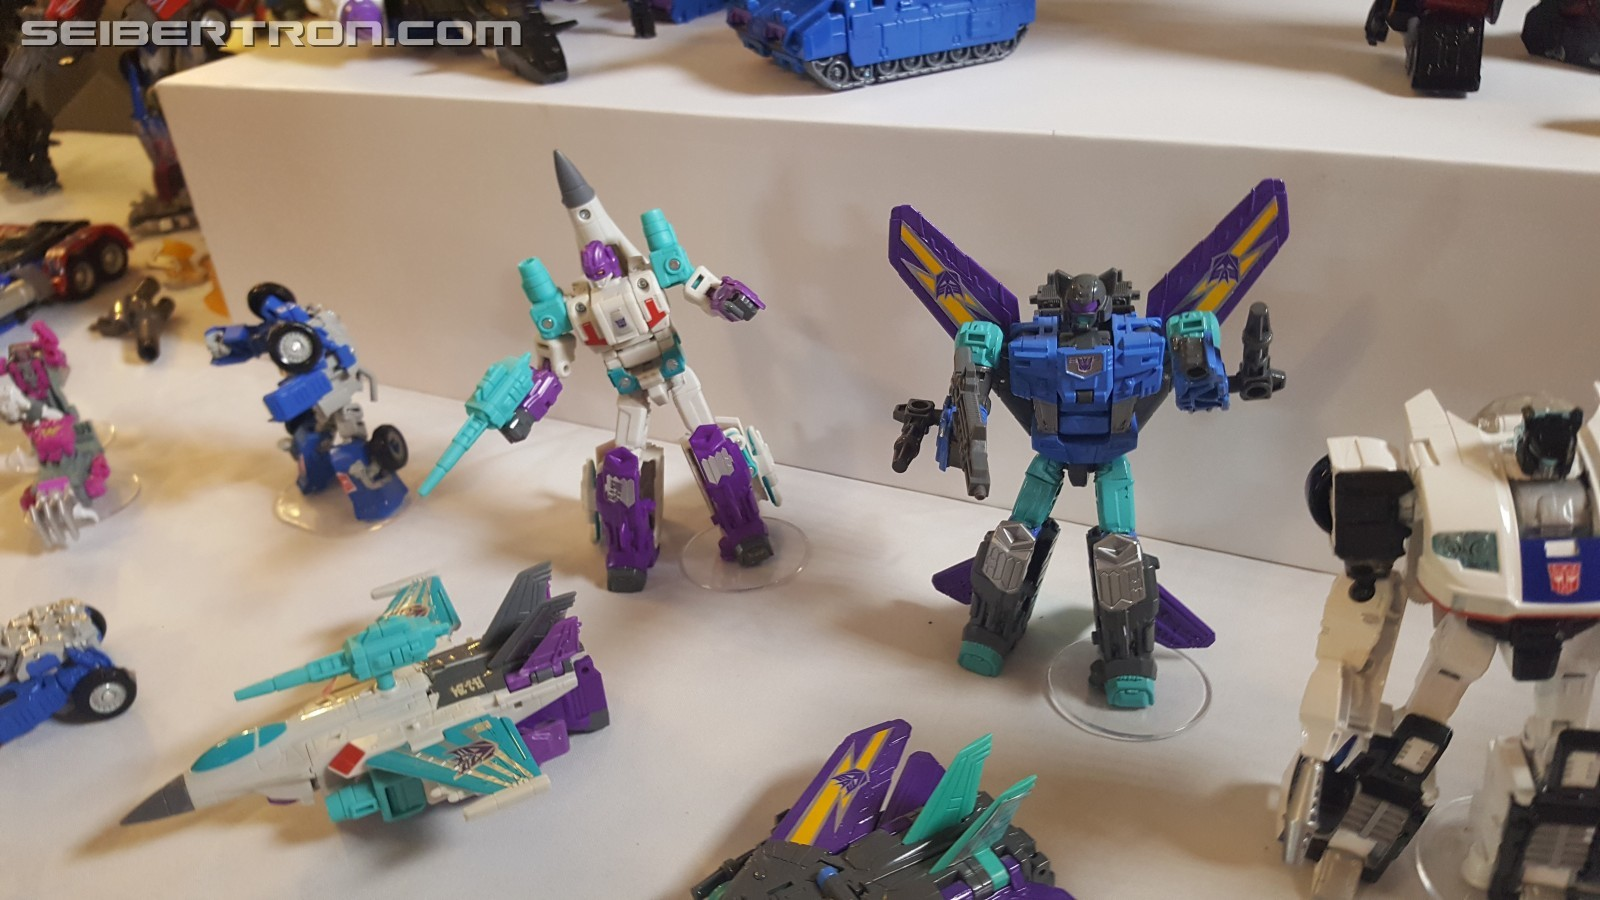 Transformers News: SDCC 2017: Hasbro Transformers Power of the Primes Toy Teaser Images, Featuring Jazz, Skullgrin